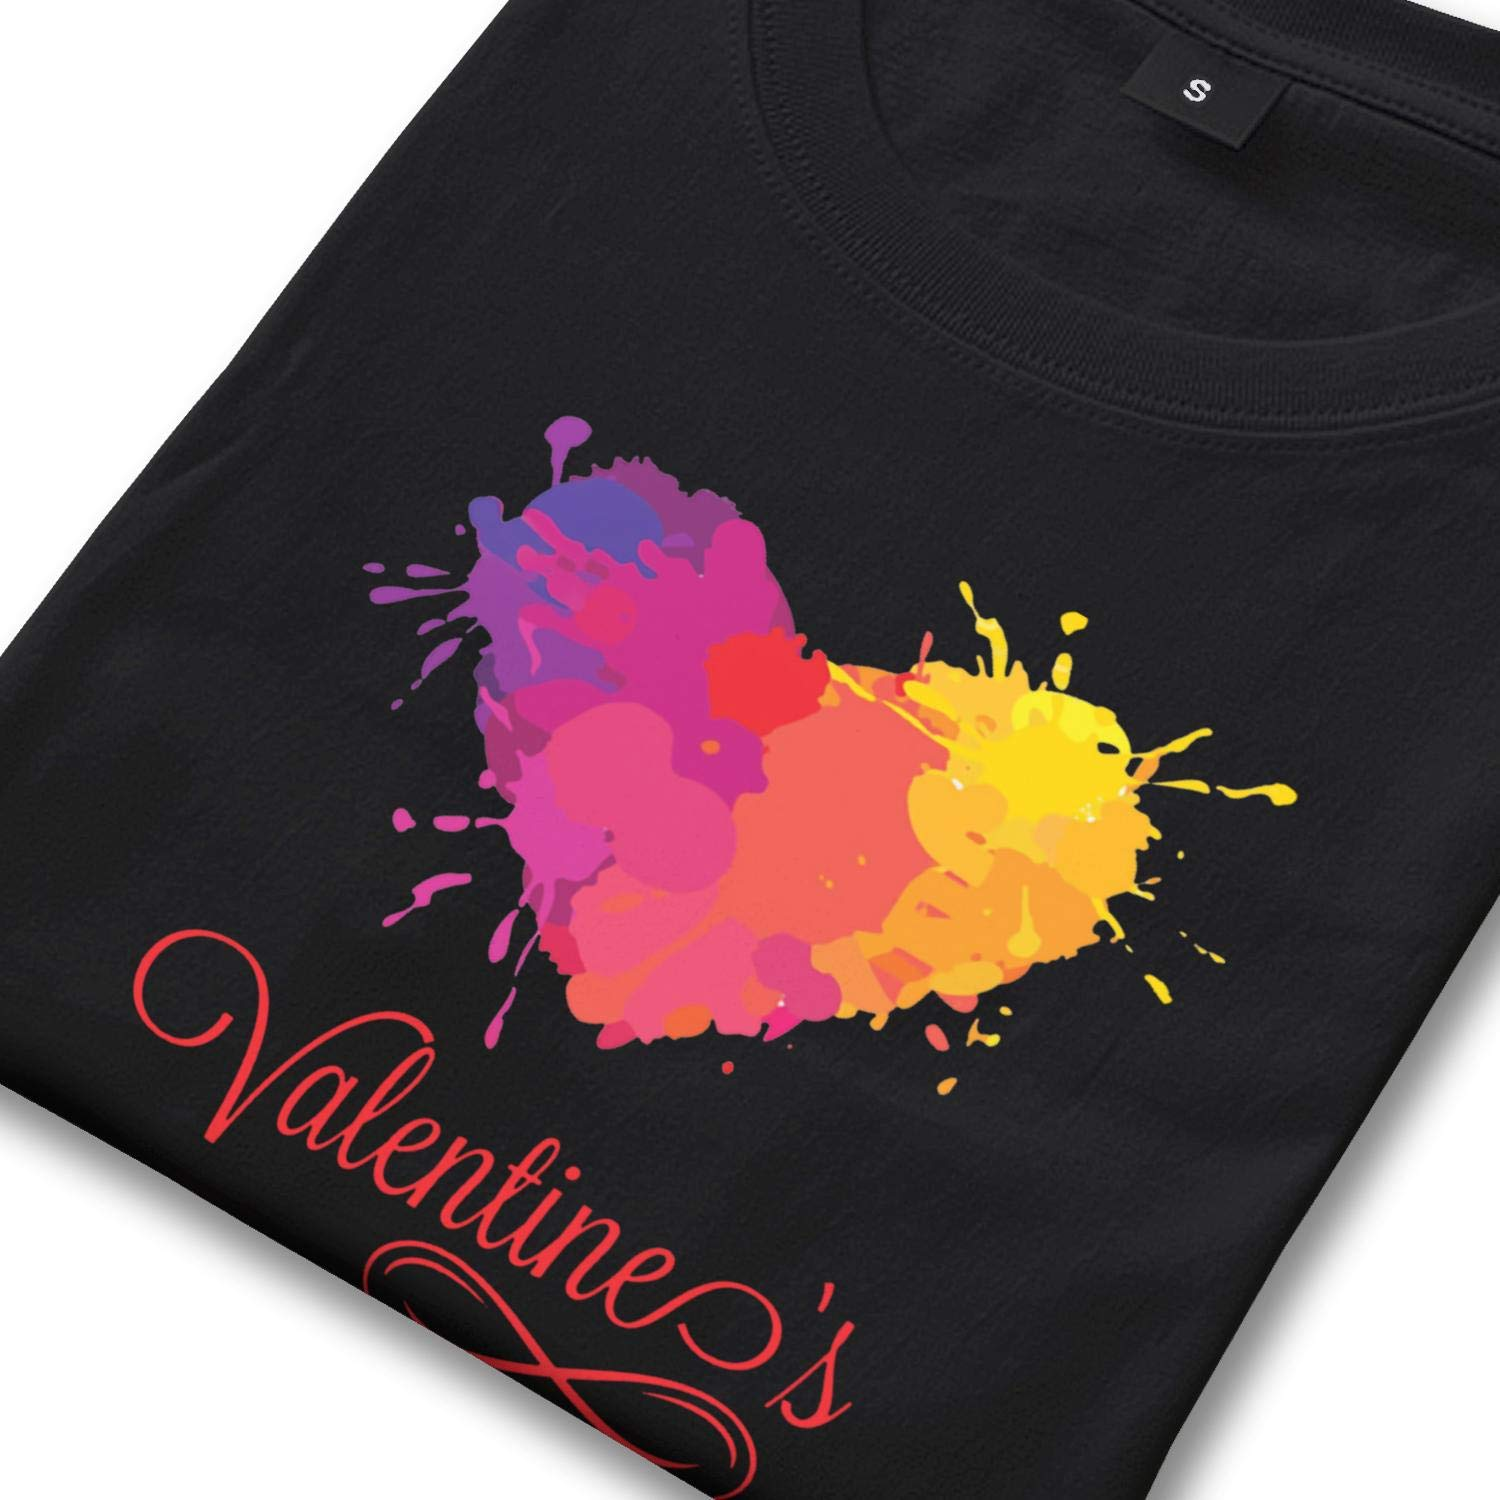 Mens t Shirts Valentines Day for Cupid Ice Skate Gift Graphic t-Shirt for Men Casual Premium Tshirts